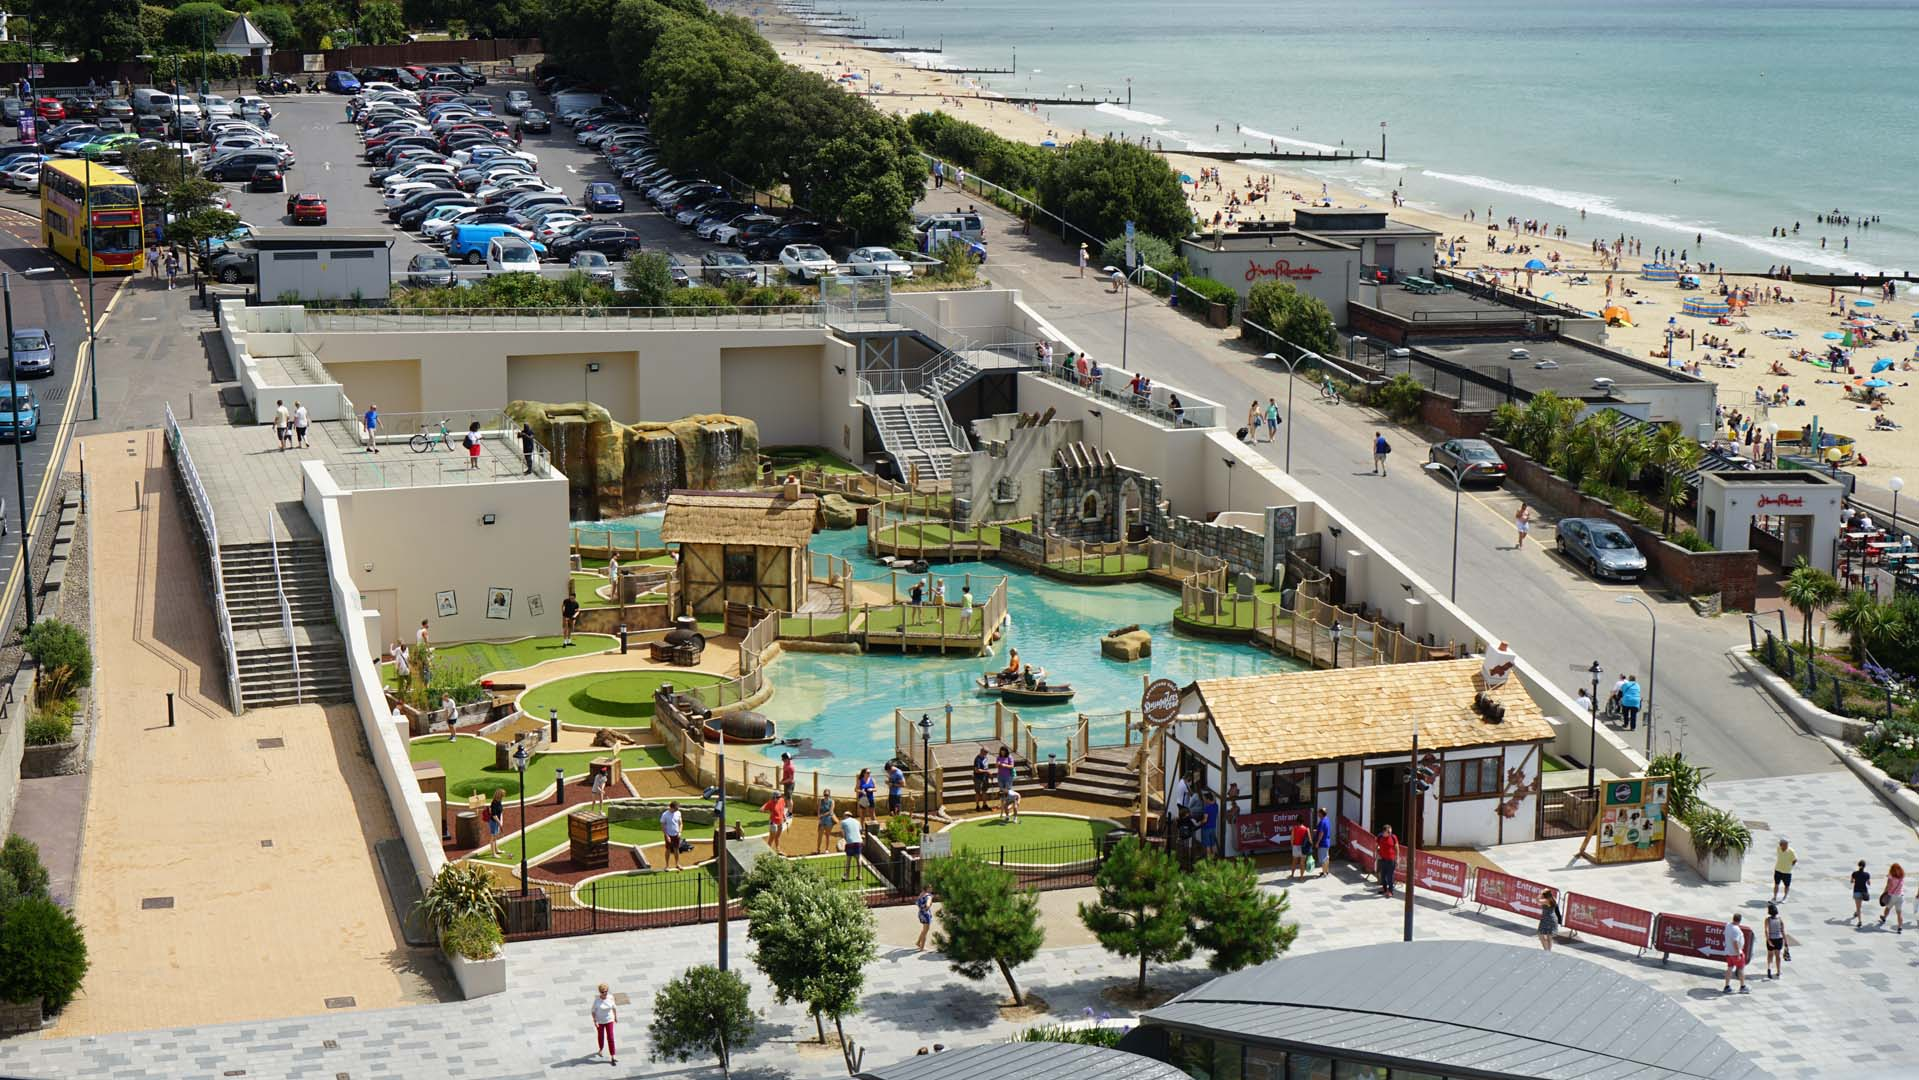 Aerial shot of the Smugglers Crazy Golf Course in Bournemouth